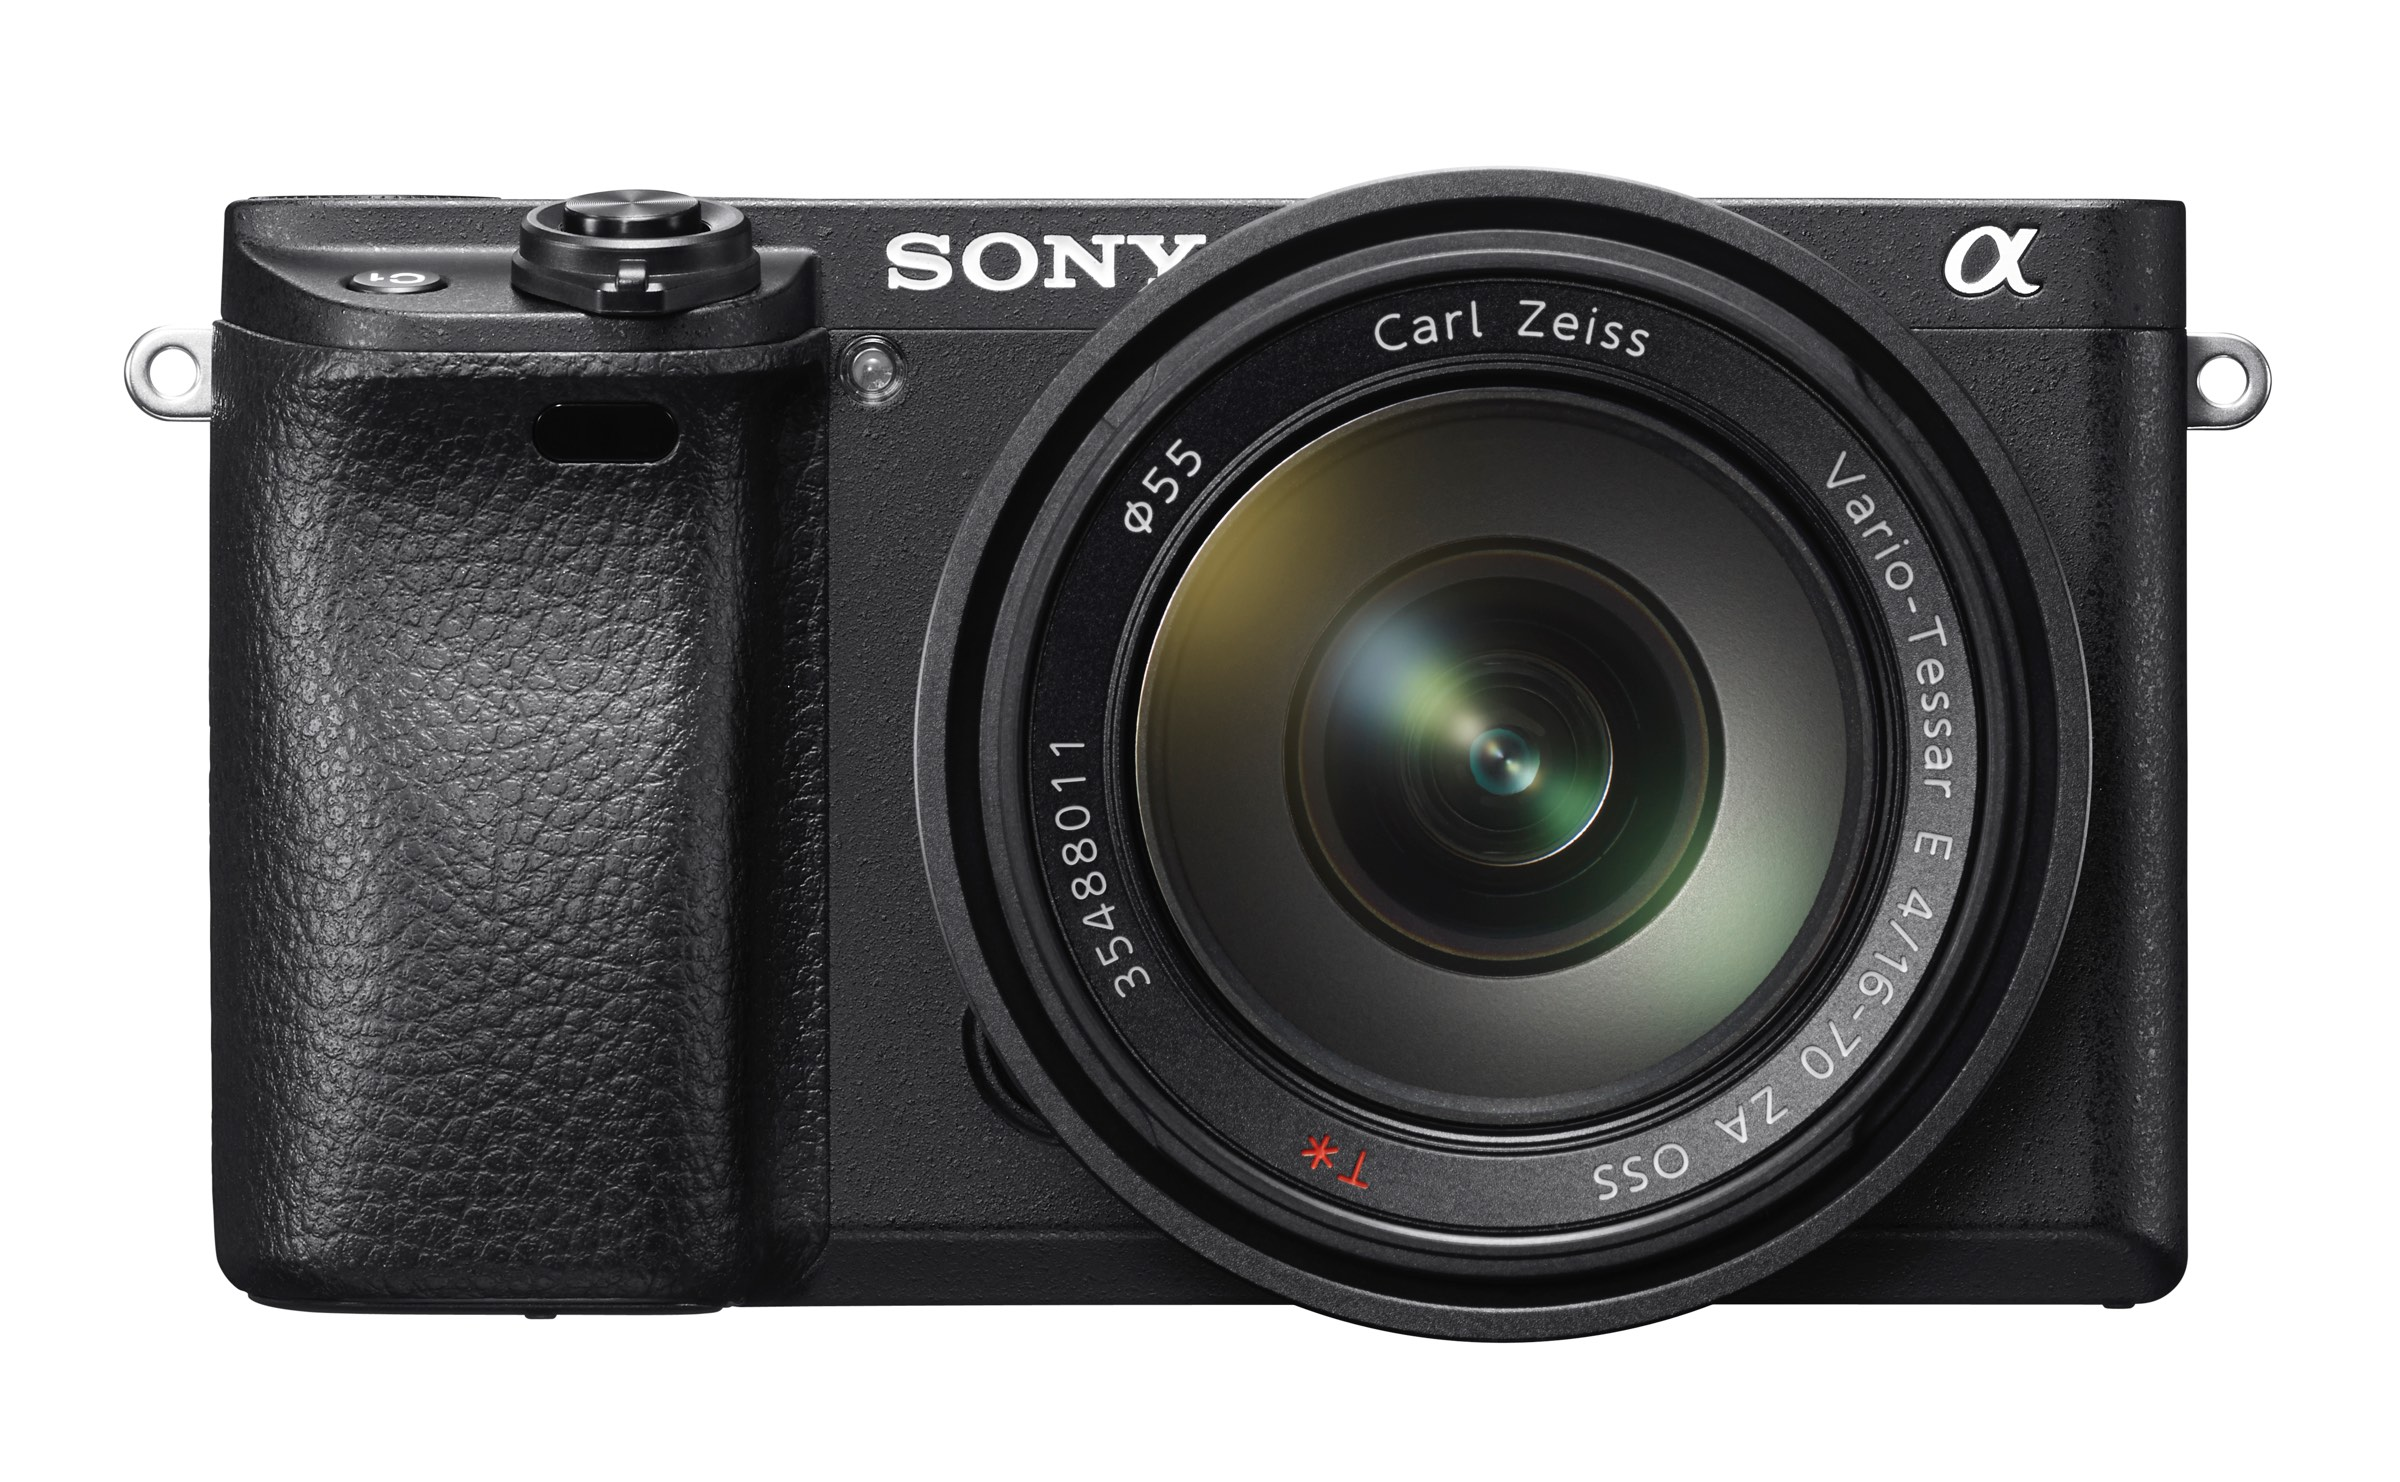 Sony A6300 Video Footage Looks Impressive